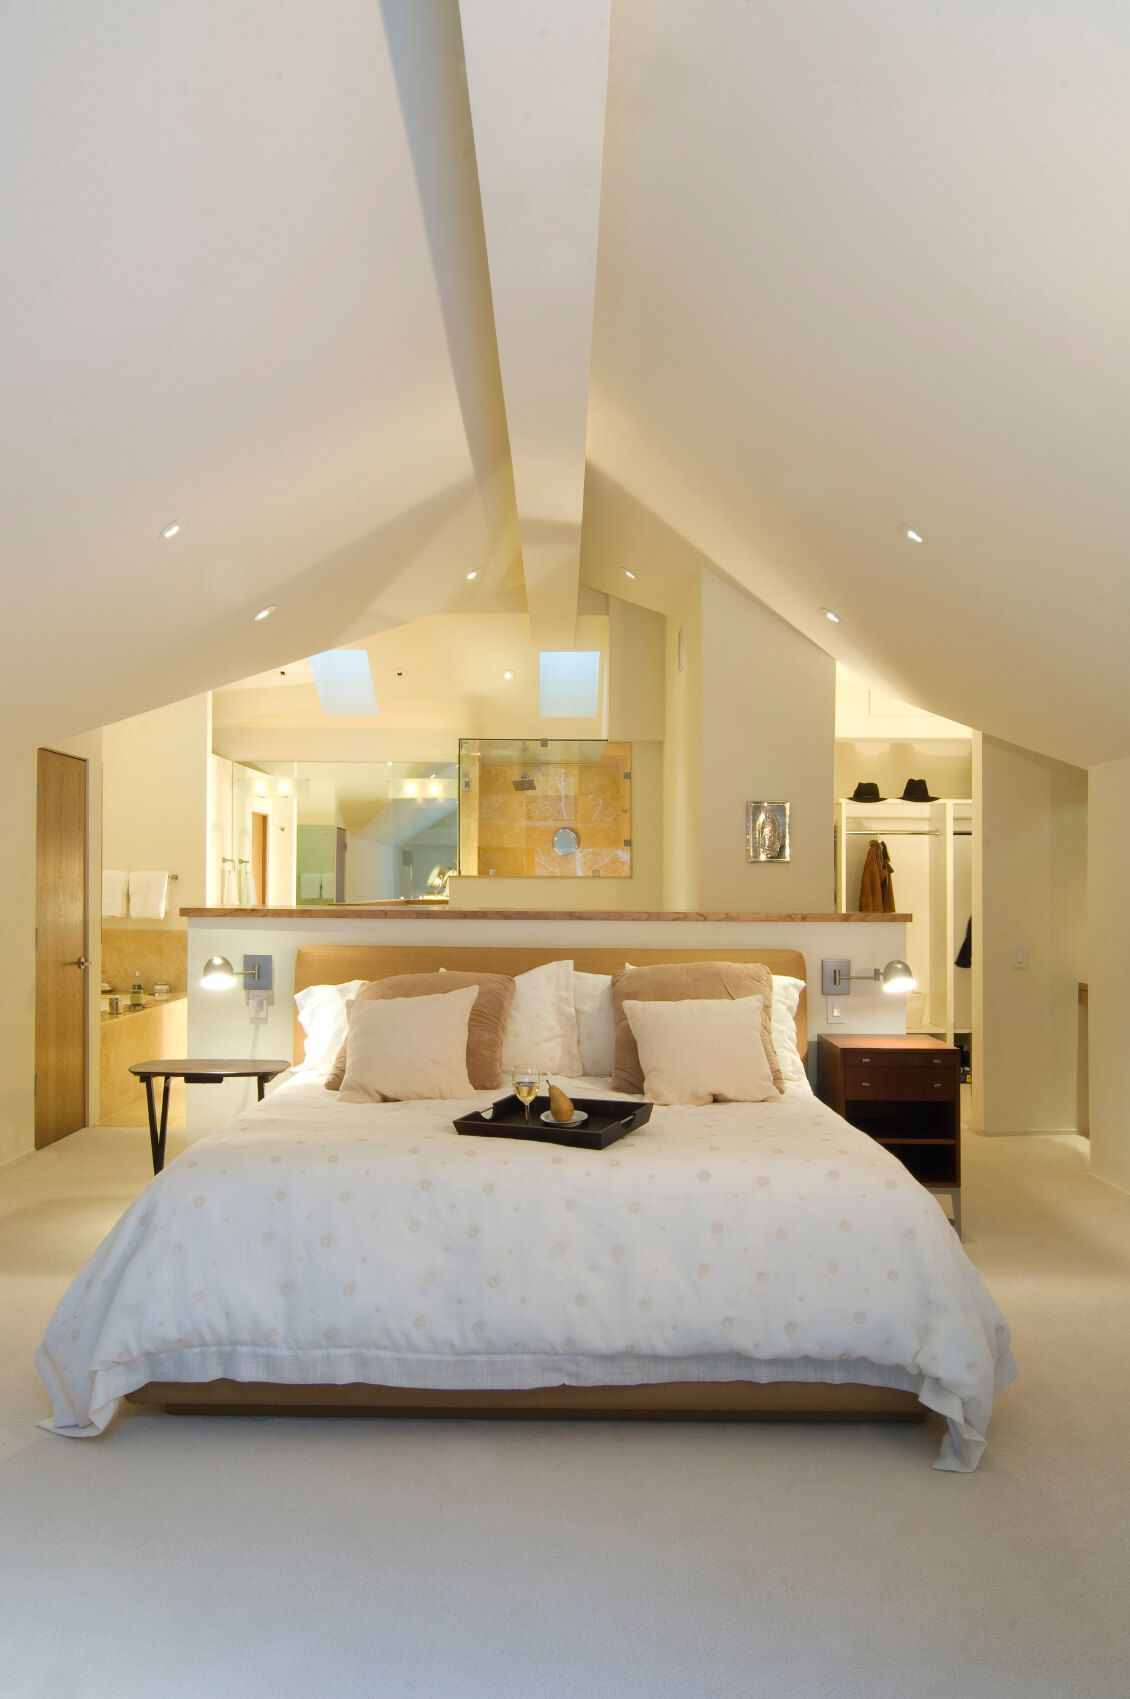 60 Attic Bedroom Ideas (Many Designs with Skylights) | Attic spaces ...